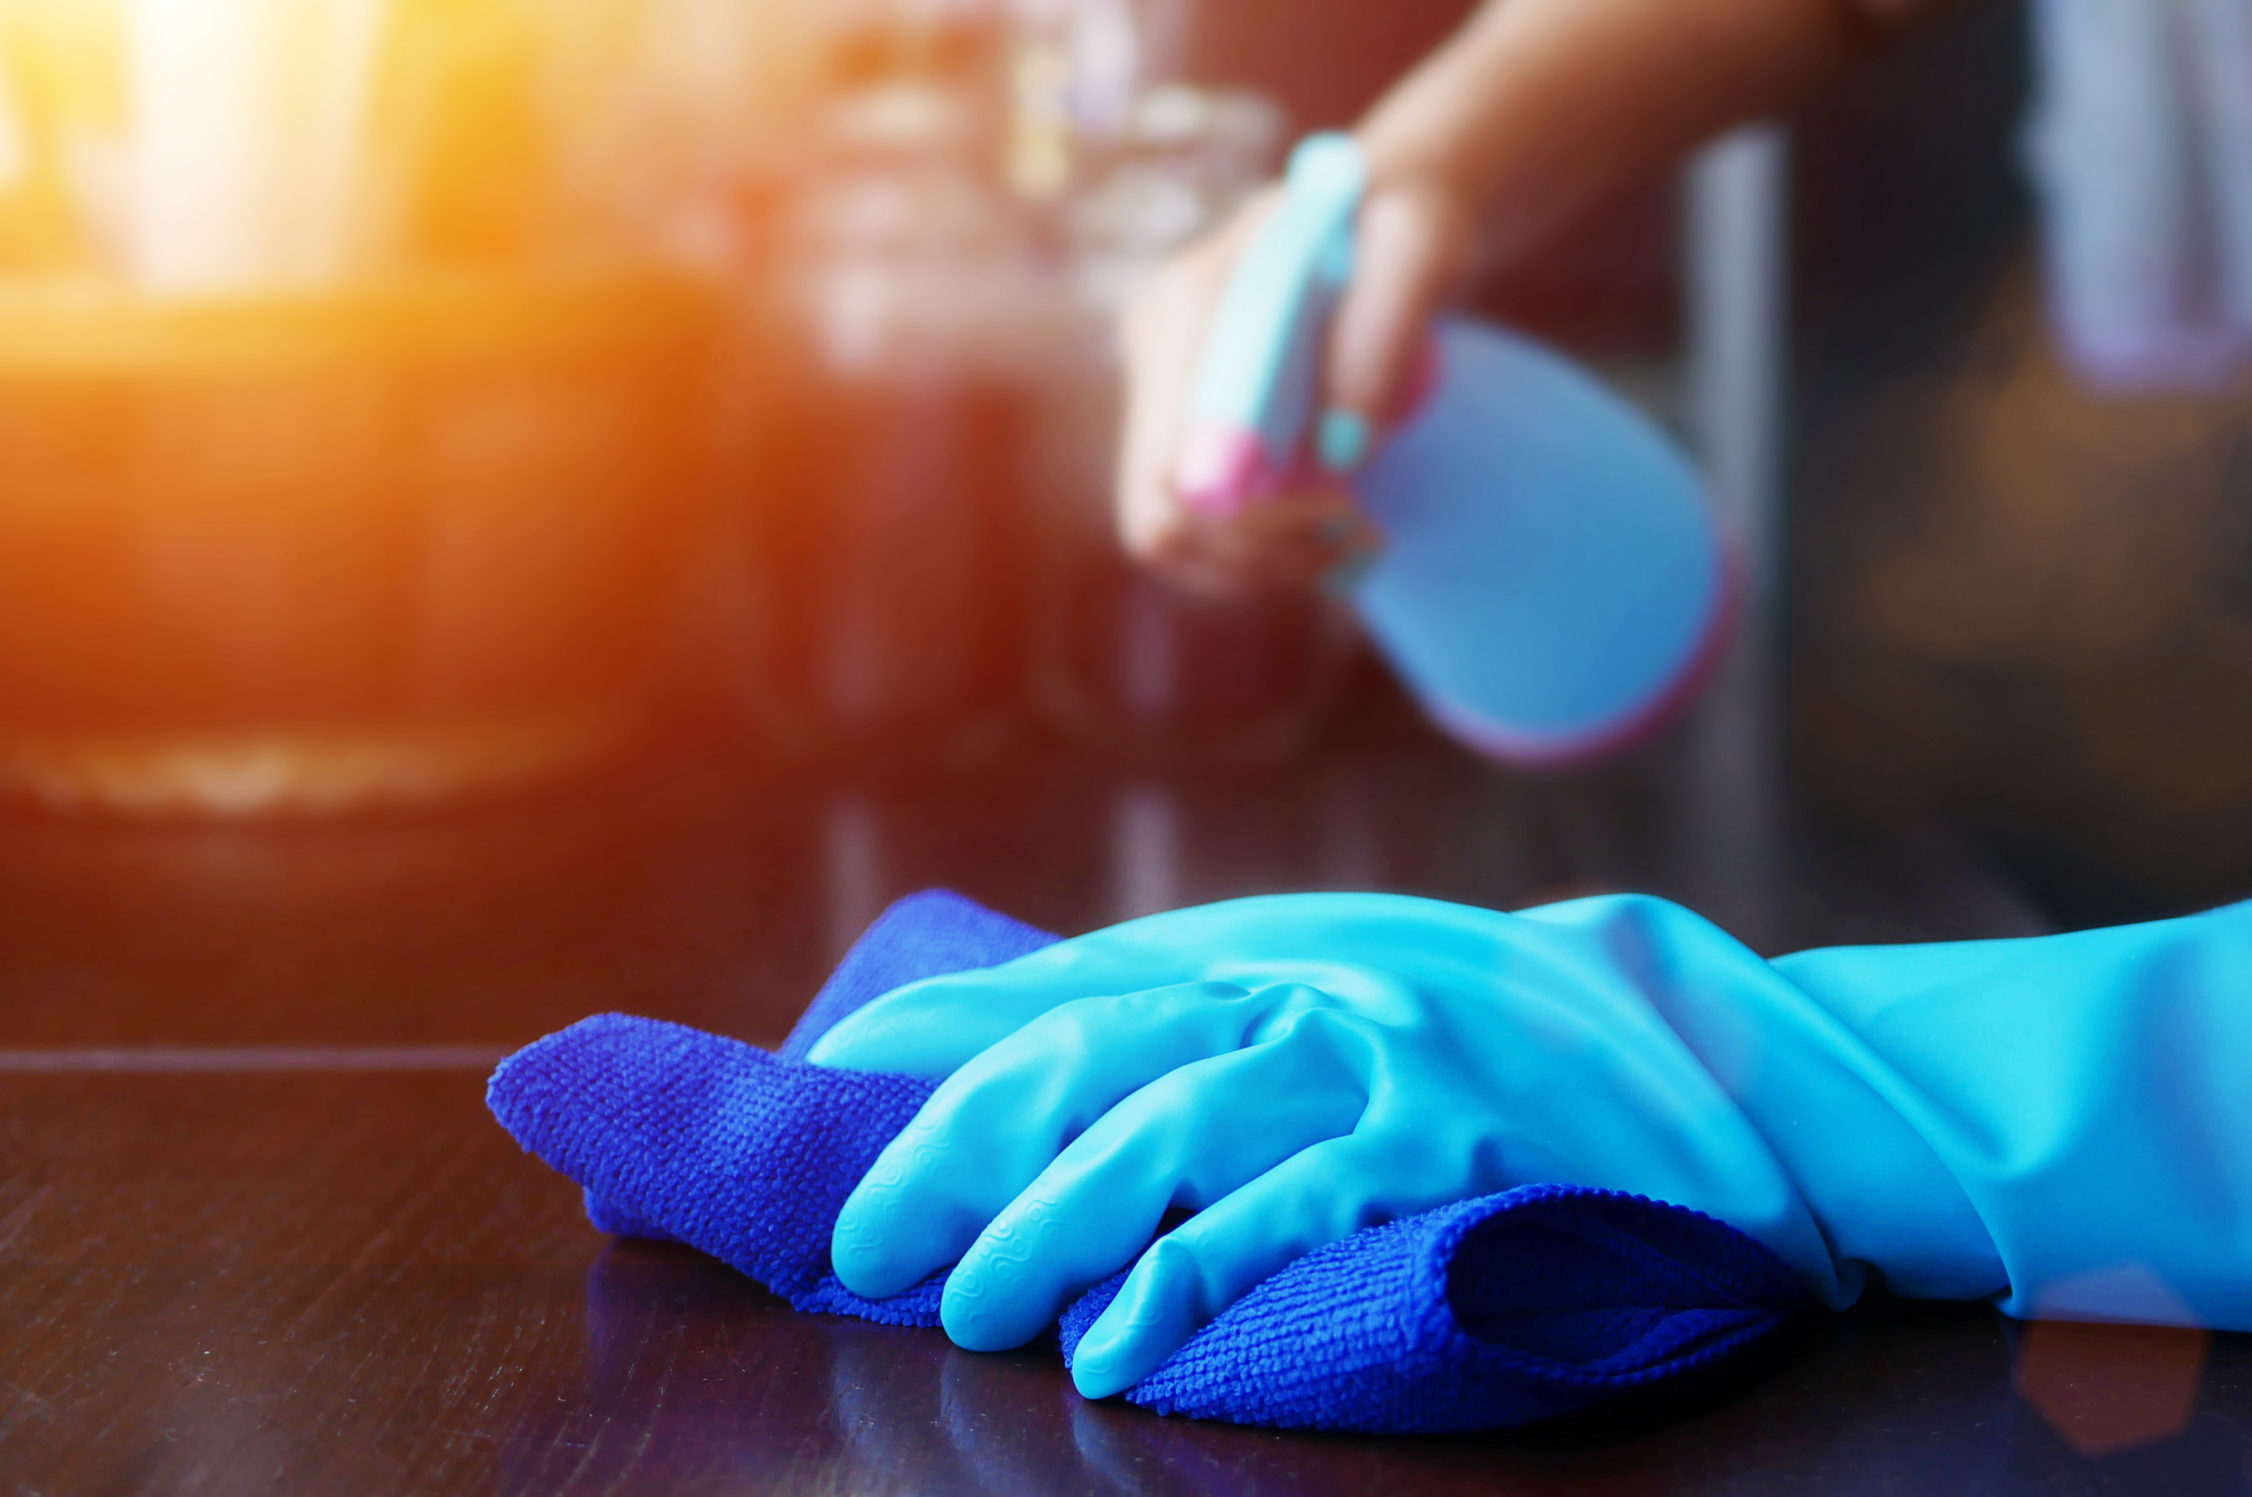 disinfecting contaminated work surfaces